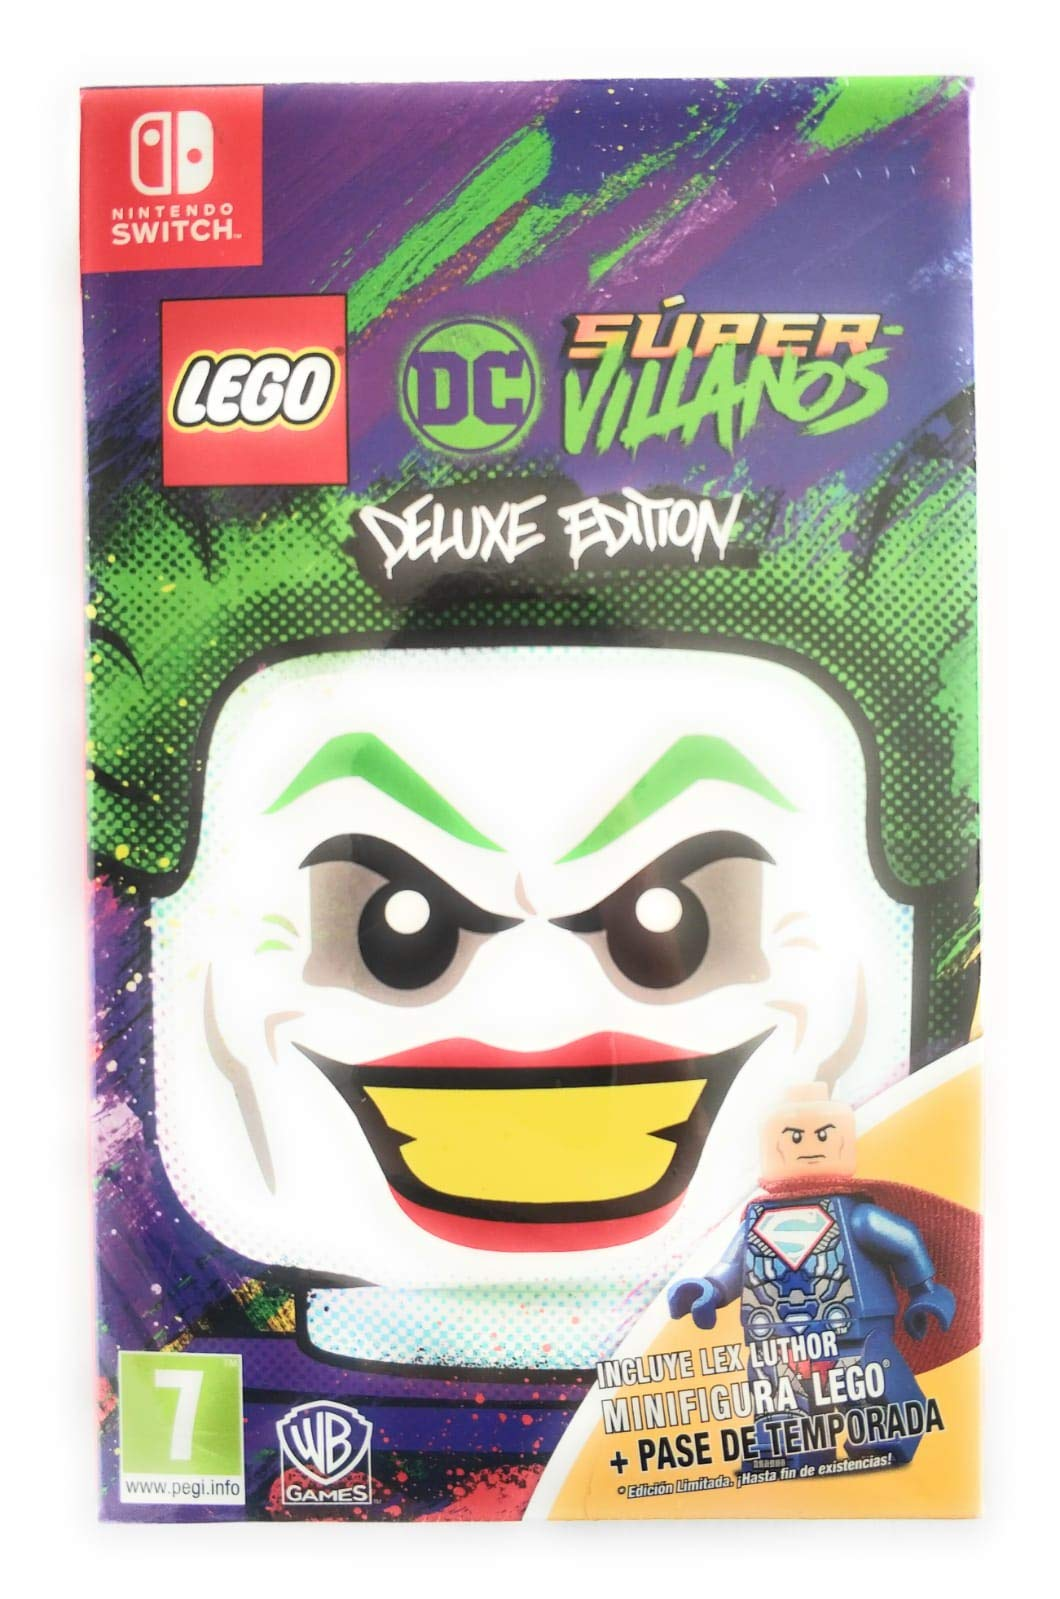 Lego DC Super Villanos Deluxe Edition Nintendo Switch: Amazon.es ...